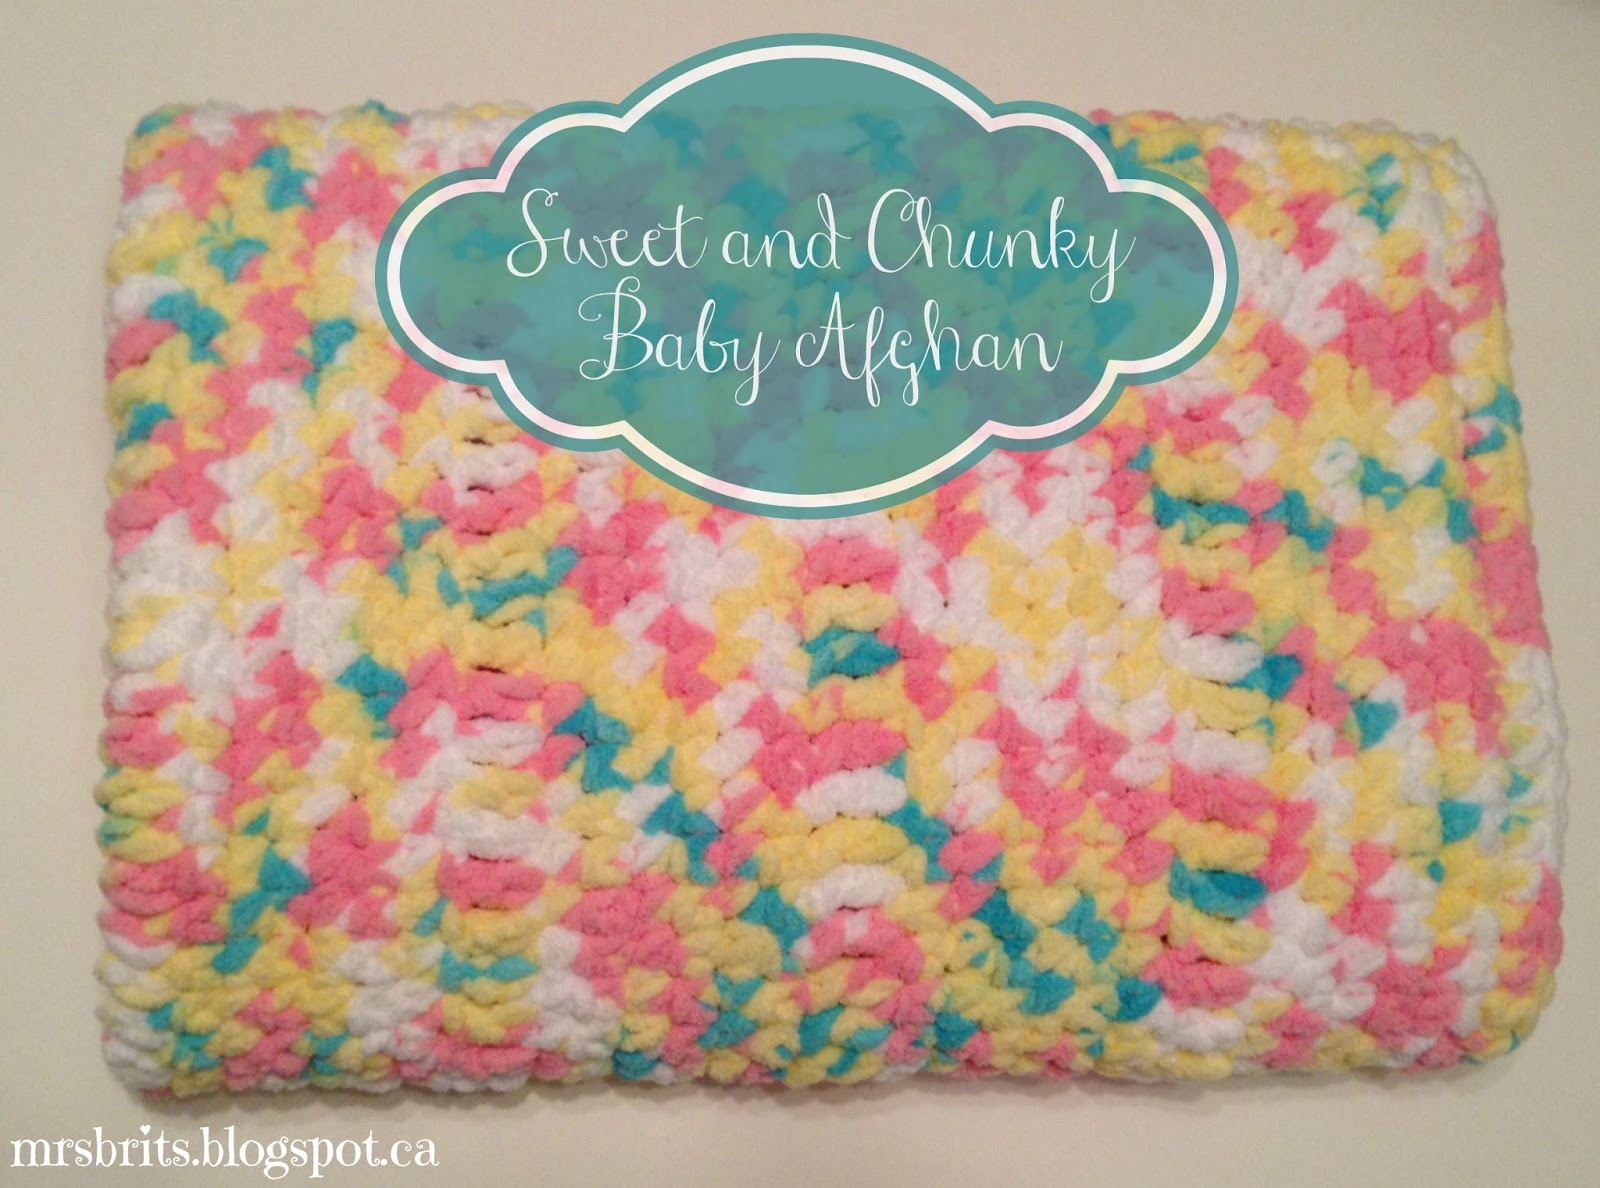 Easy Crochet Baby Blanket Patterns For Beginners : MrsBrits: Sweet and Chunky Baby Afghan {Crochet Pattern}